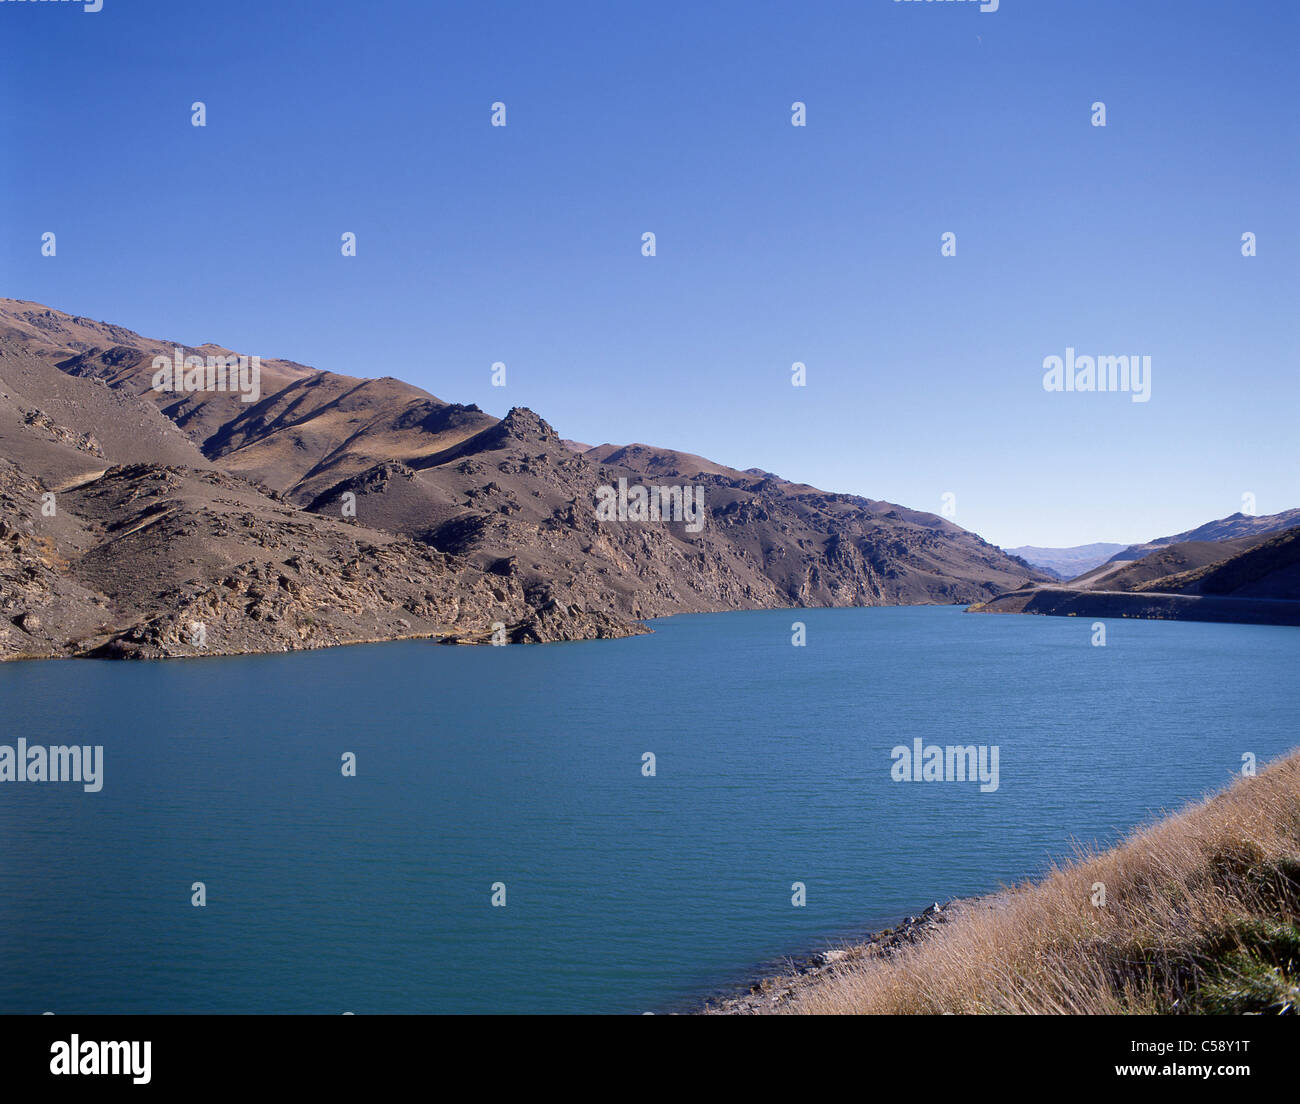 Man-made Lake Dunstan on Clutha River, Central Otago District, Otago Region, South Island, New Zealand - Stock Image